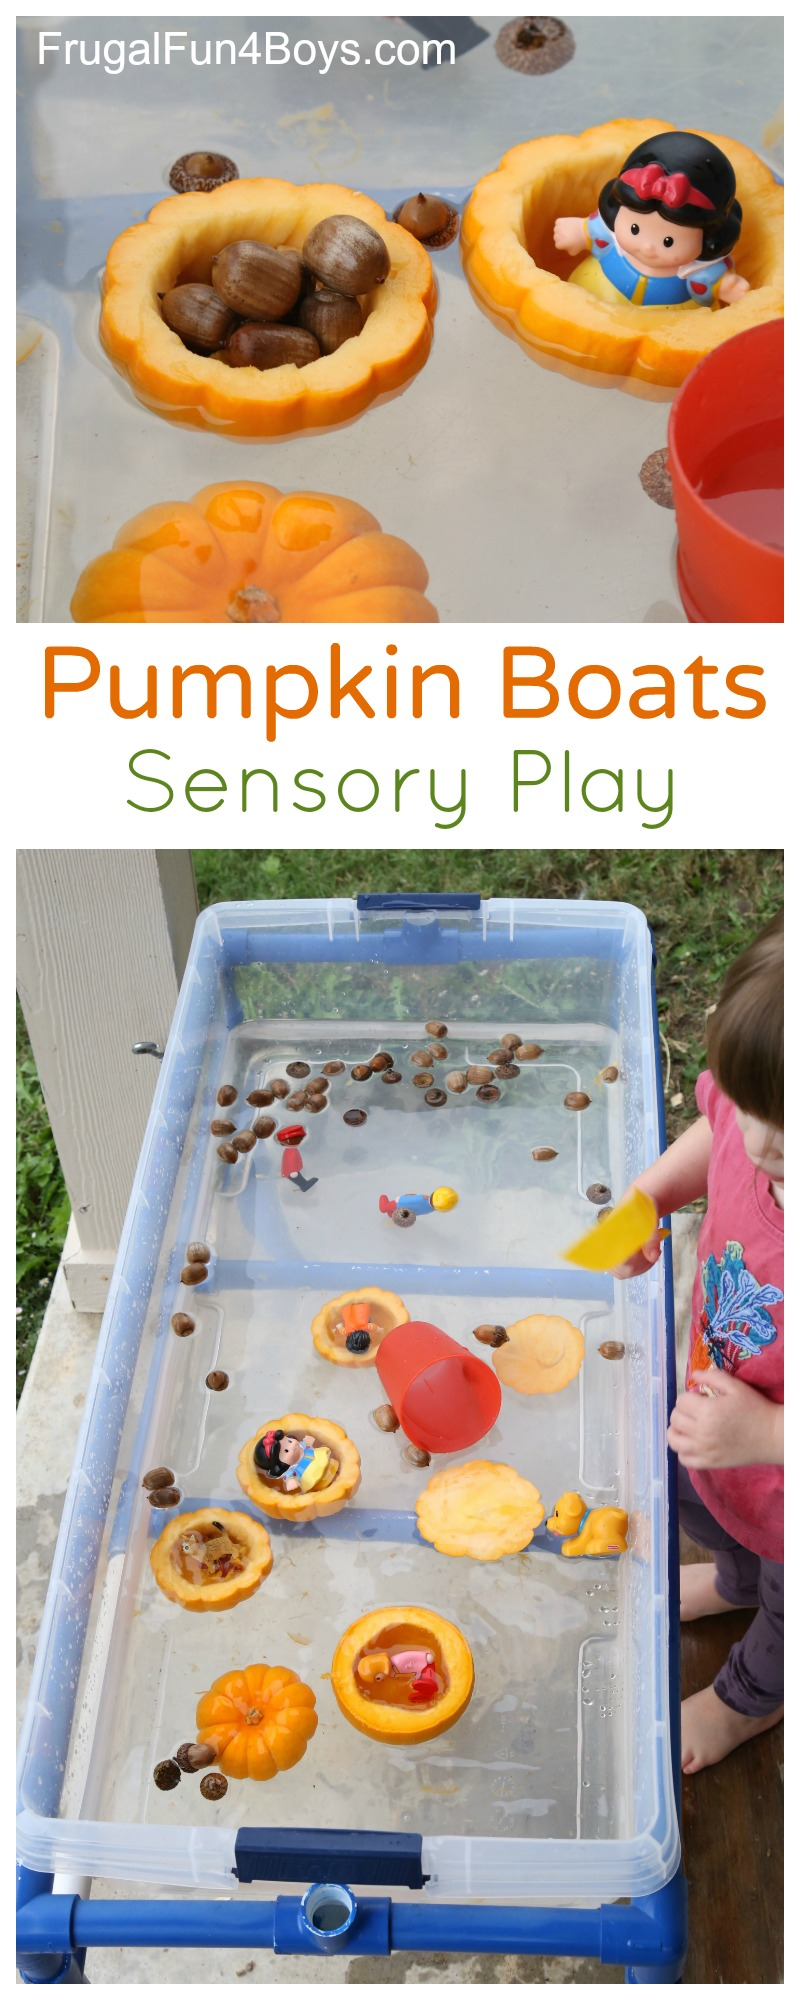 Pumpkin Boats Fall Sensory Play